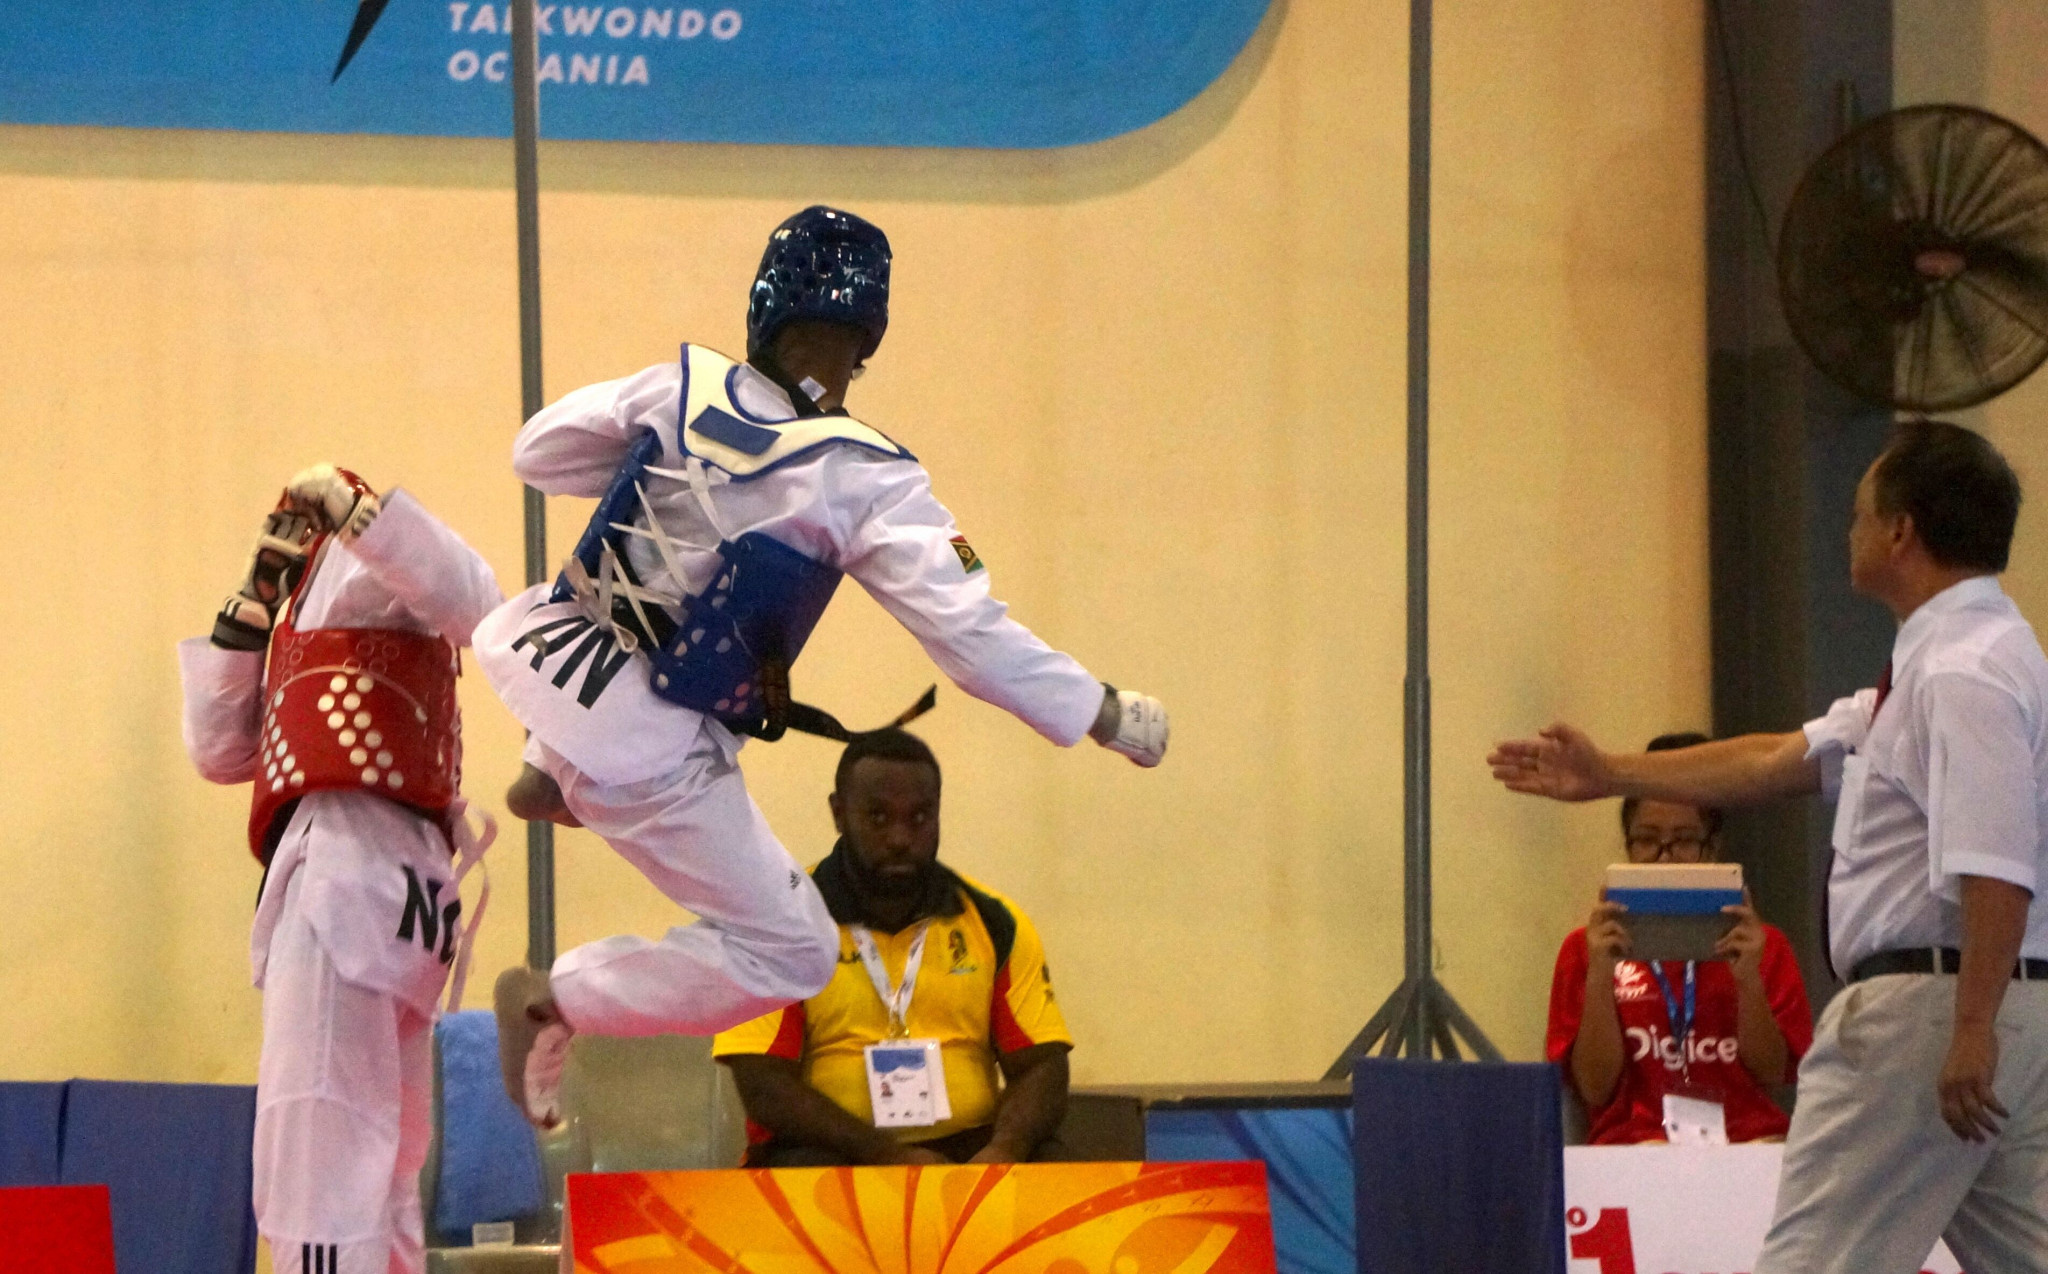 The first day of the Pacific Games taekwondo competition took place at the Harvest Centre on Tuesday ©Games News Service